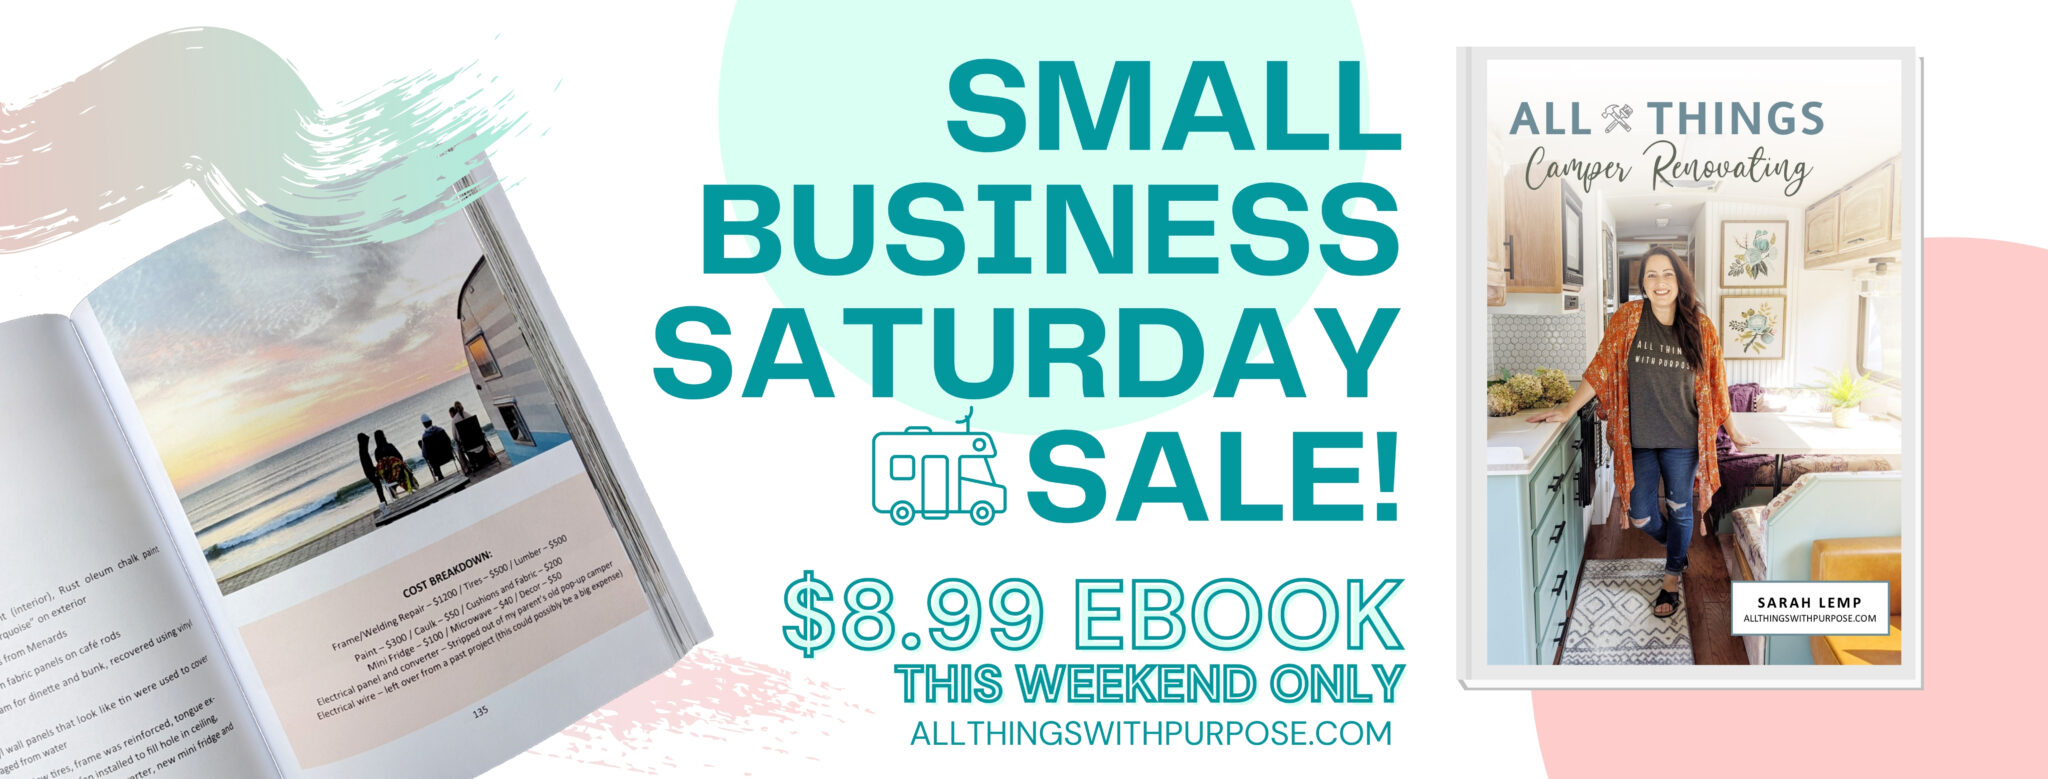 Small Business Saturday eBook Sale All Things with Purpose Sarah Lemp 1